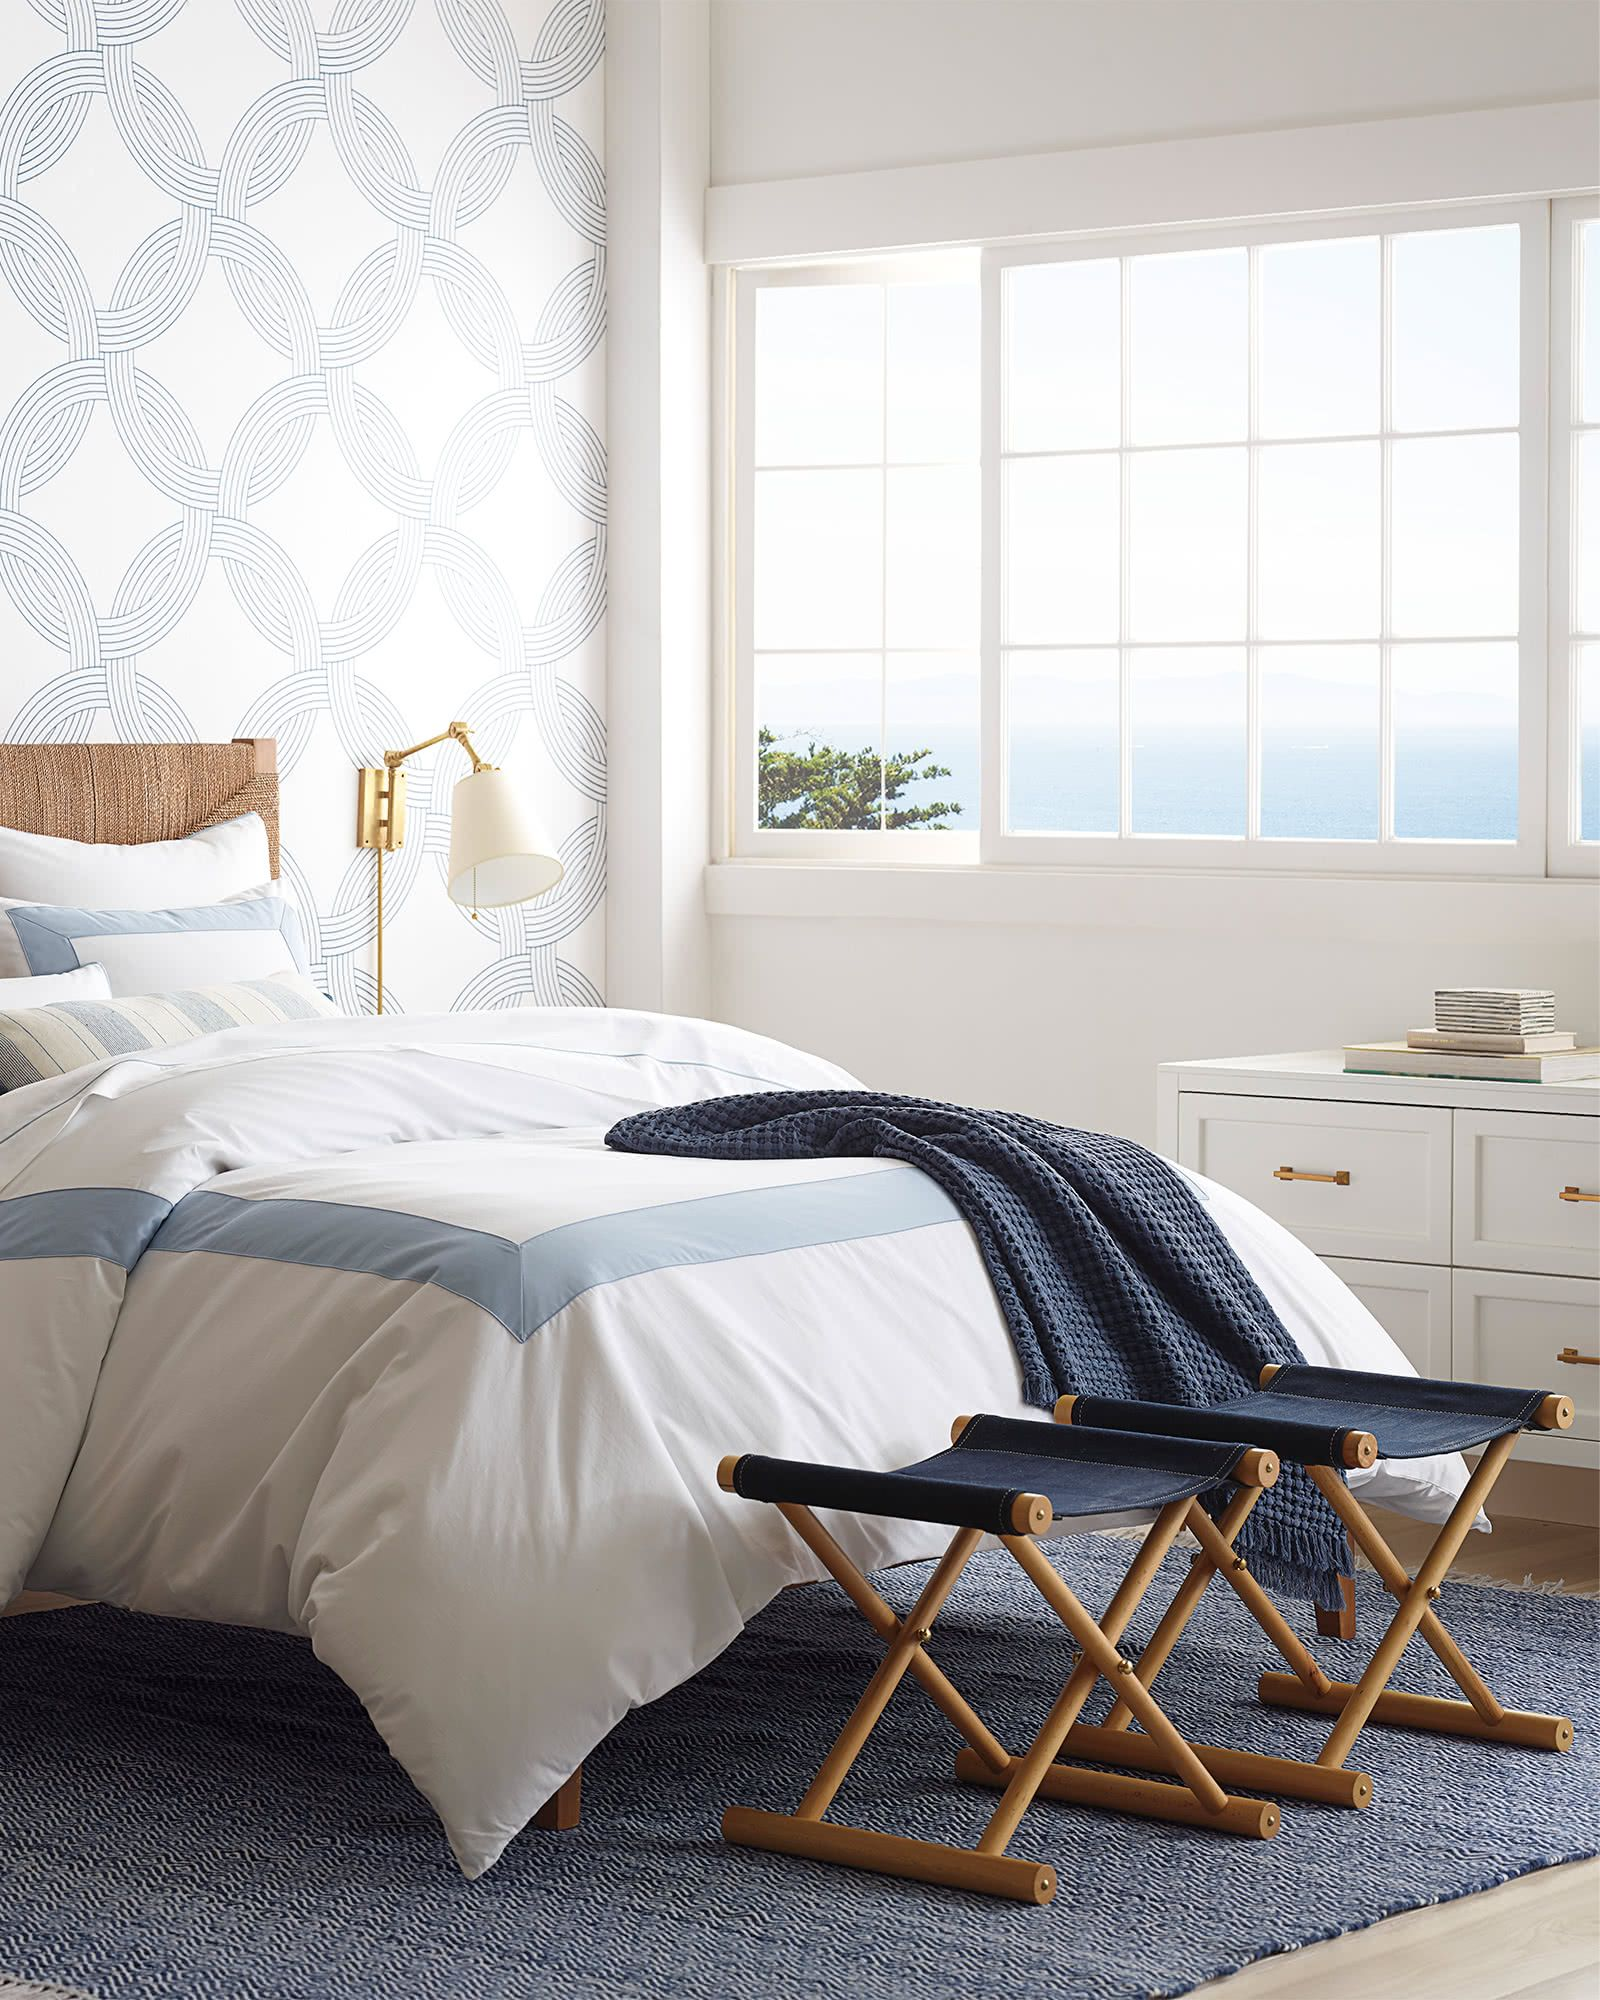 Owens Wallpaper in 2021   Home decor, Where to buy ...